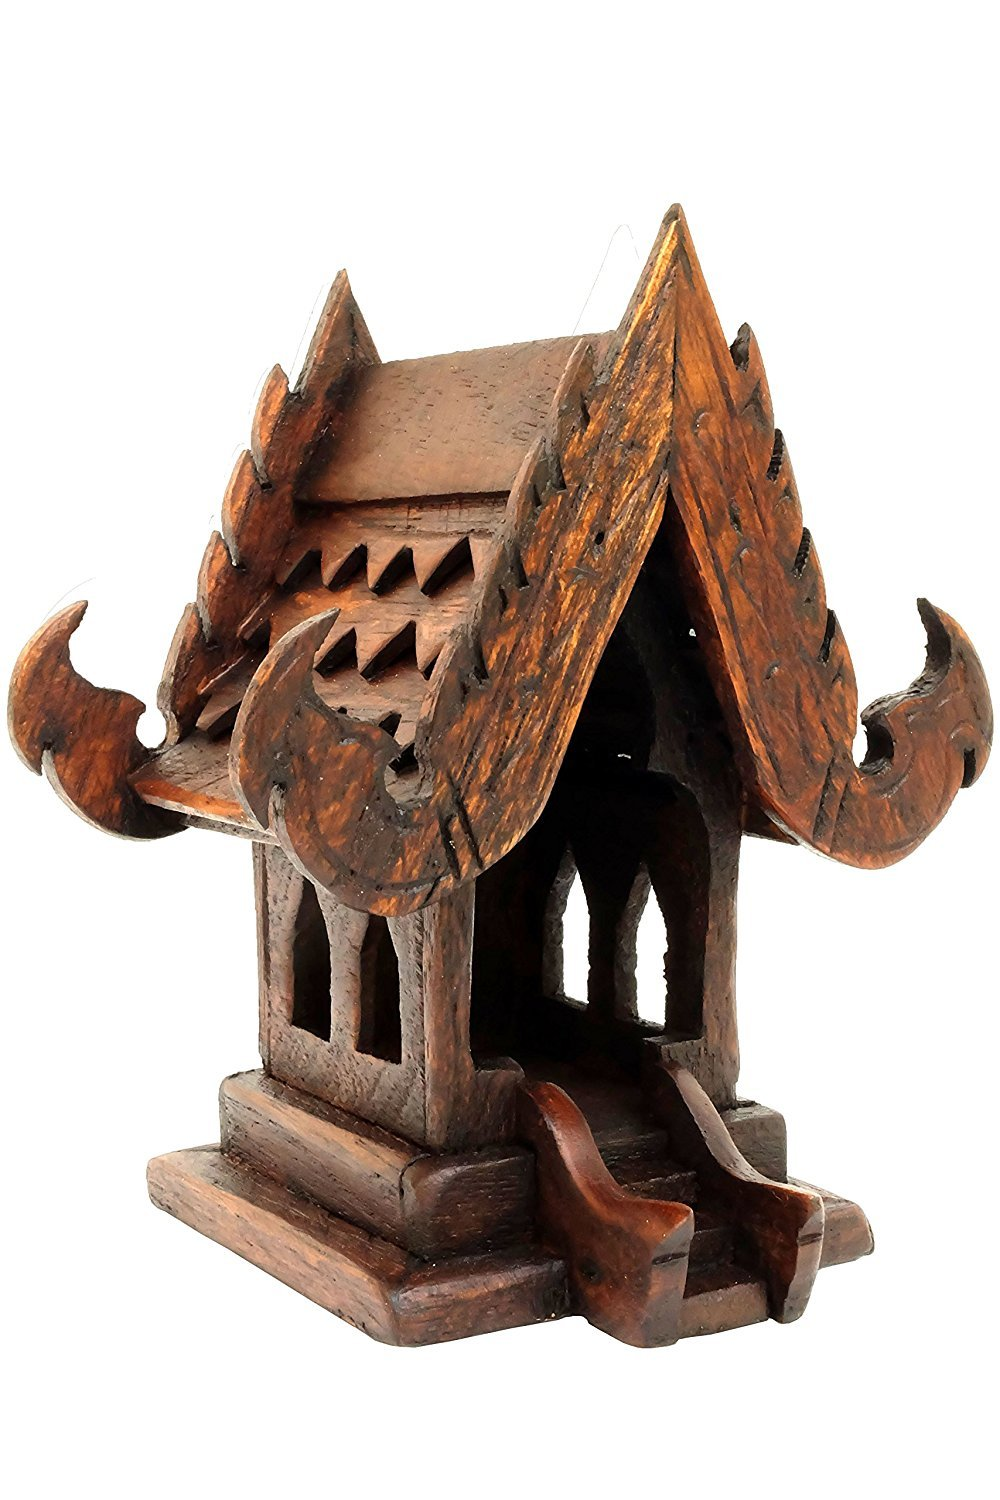 Thai Buddhism Handmade Teak Wood Spirit House. (House, W4''xL3''xH5'') (House, W4''xL3''xH5'') by Unique Thailand